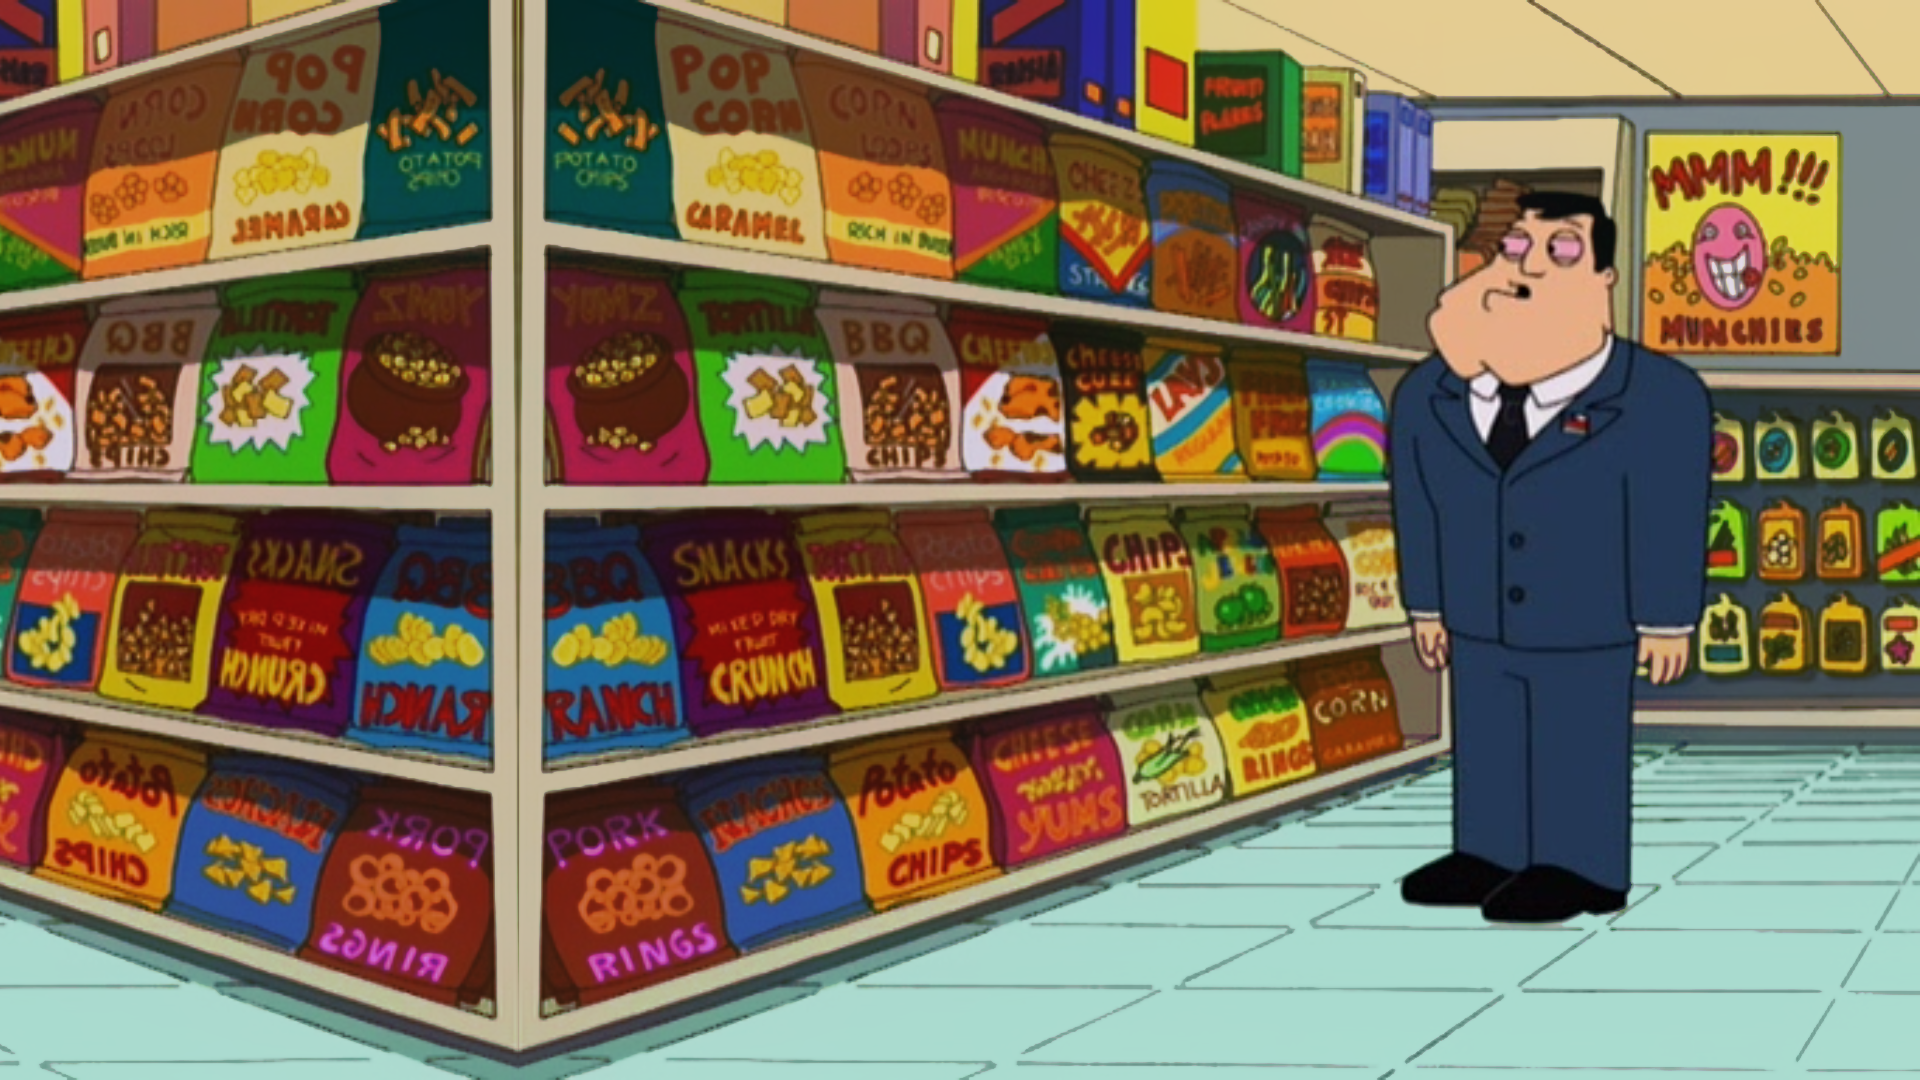 Chips Tv Show Wallpaper Tv show   american dad 1920x1080